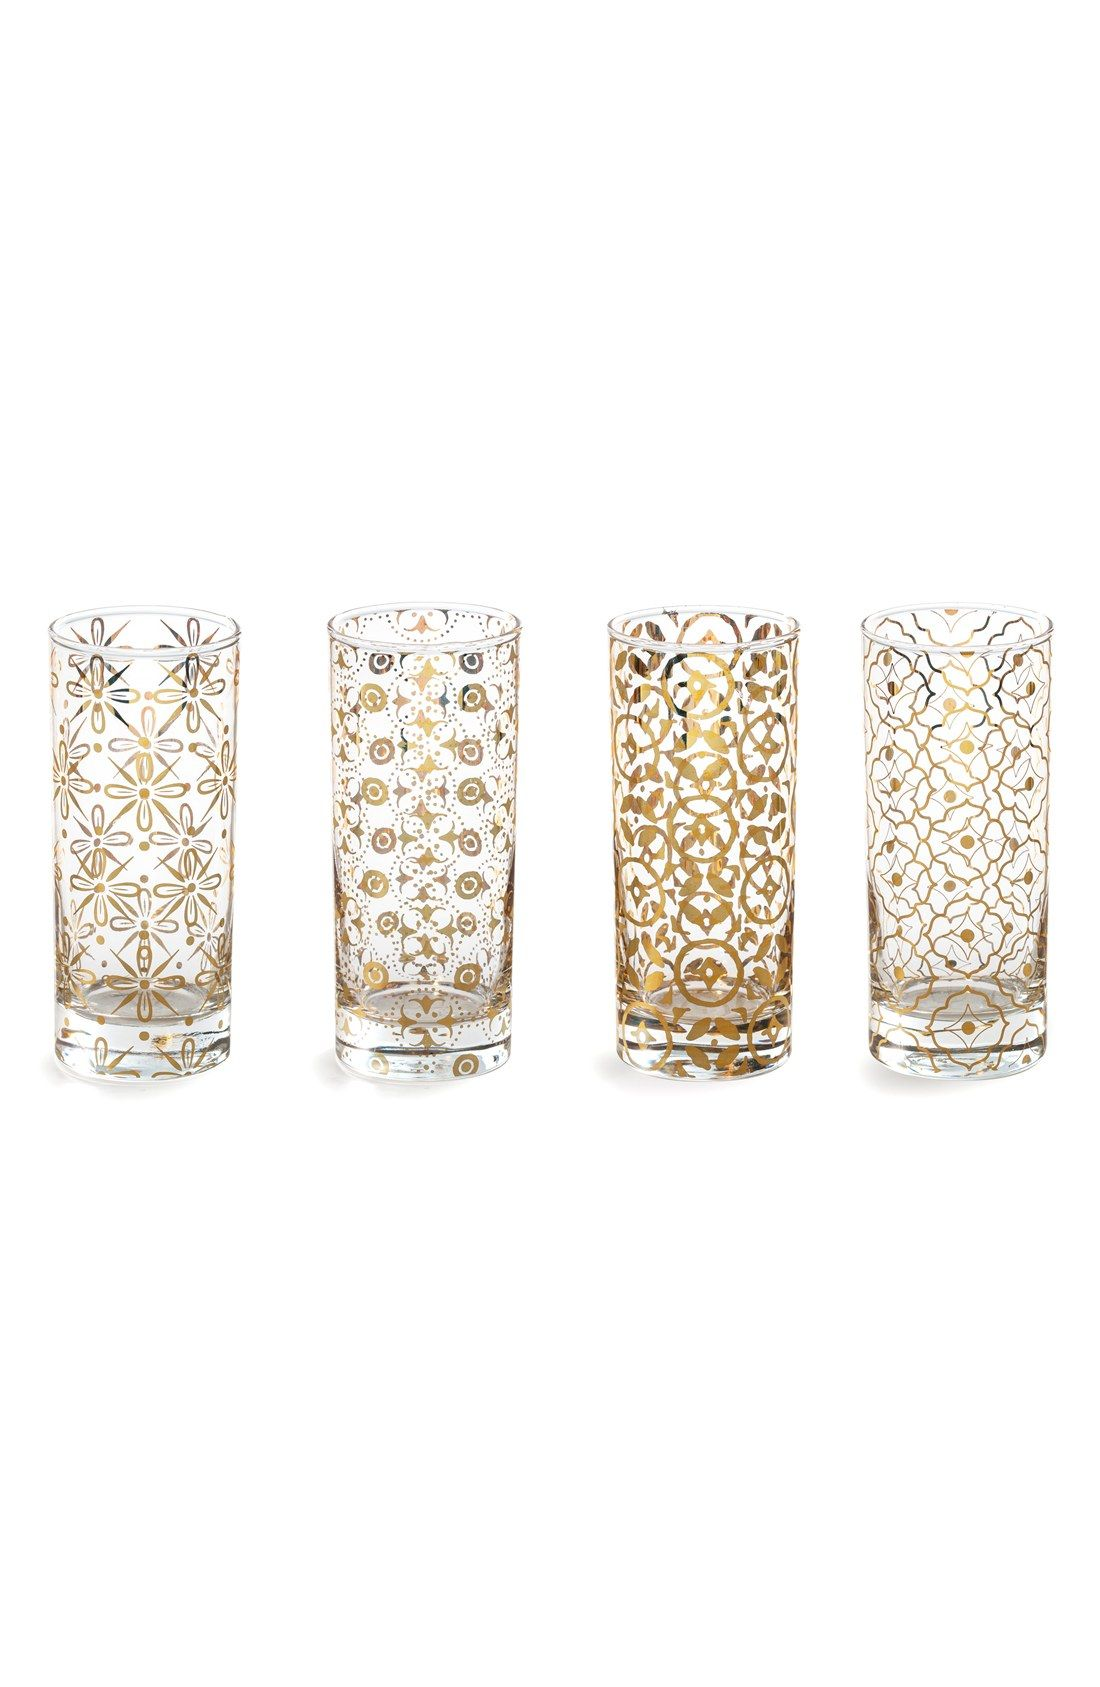 Rosanna \'Kashmir\' Highball Glasses (Set of 4) | Quirky Products ...